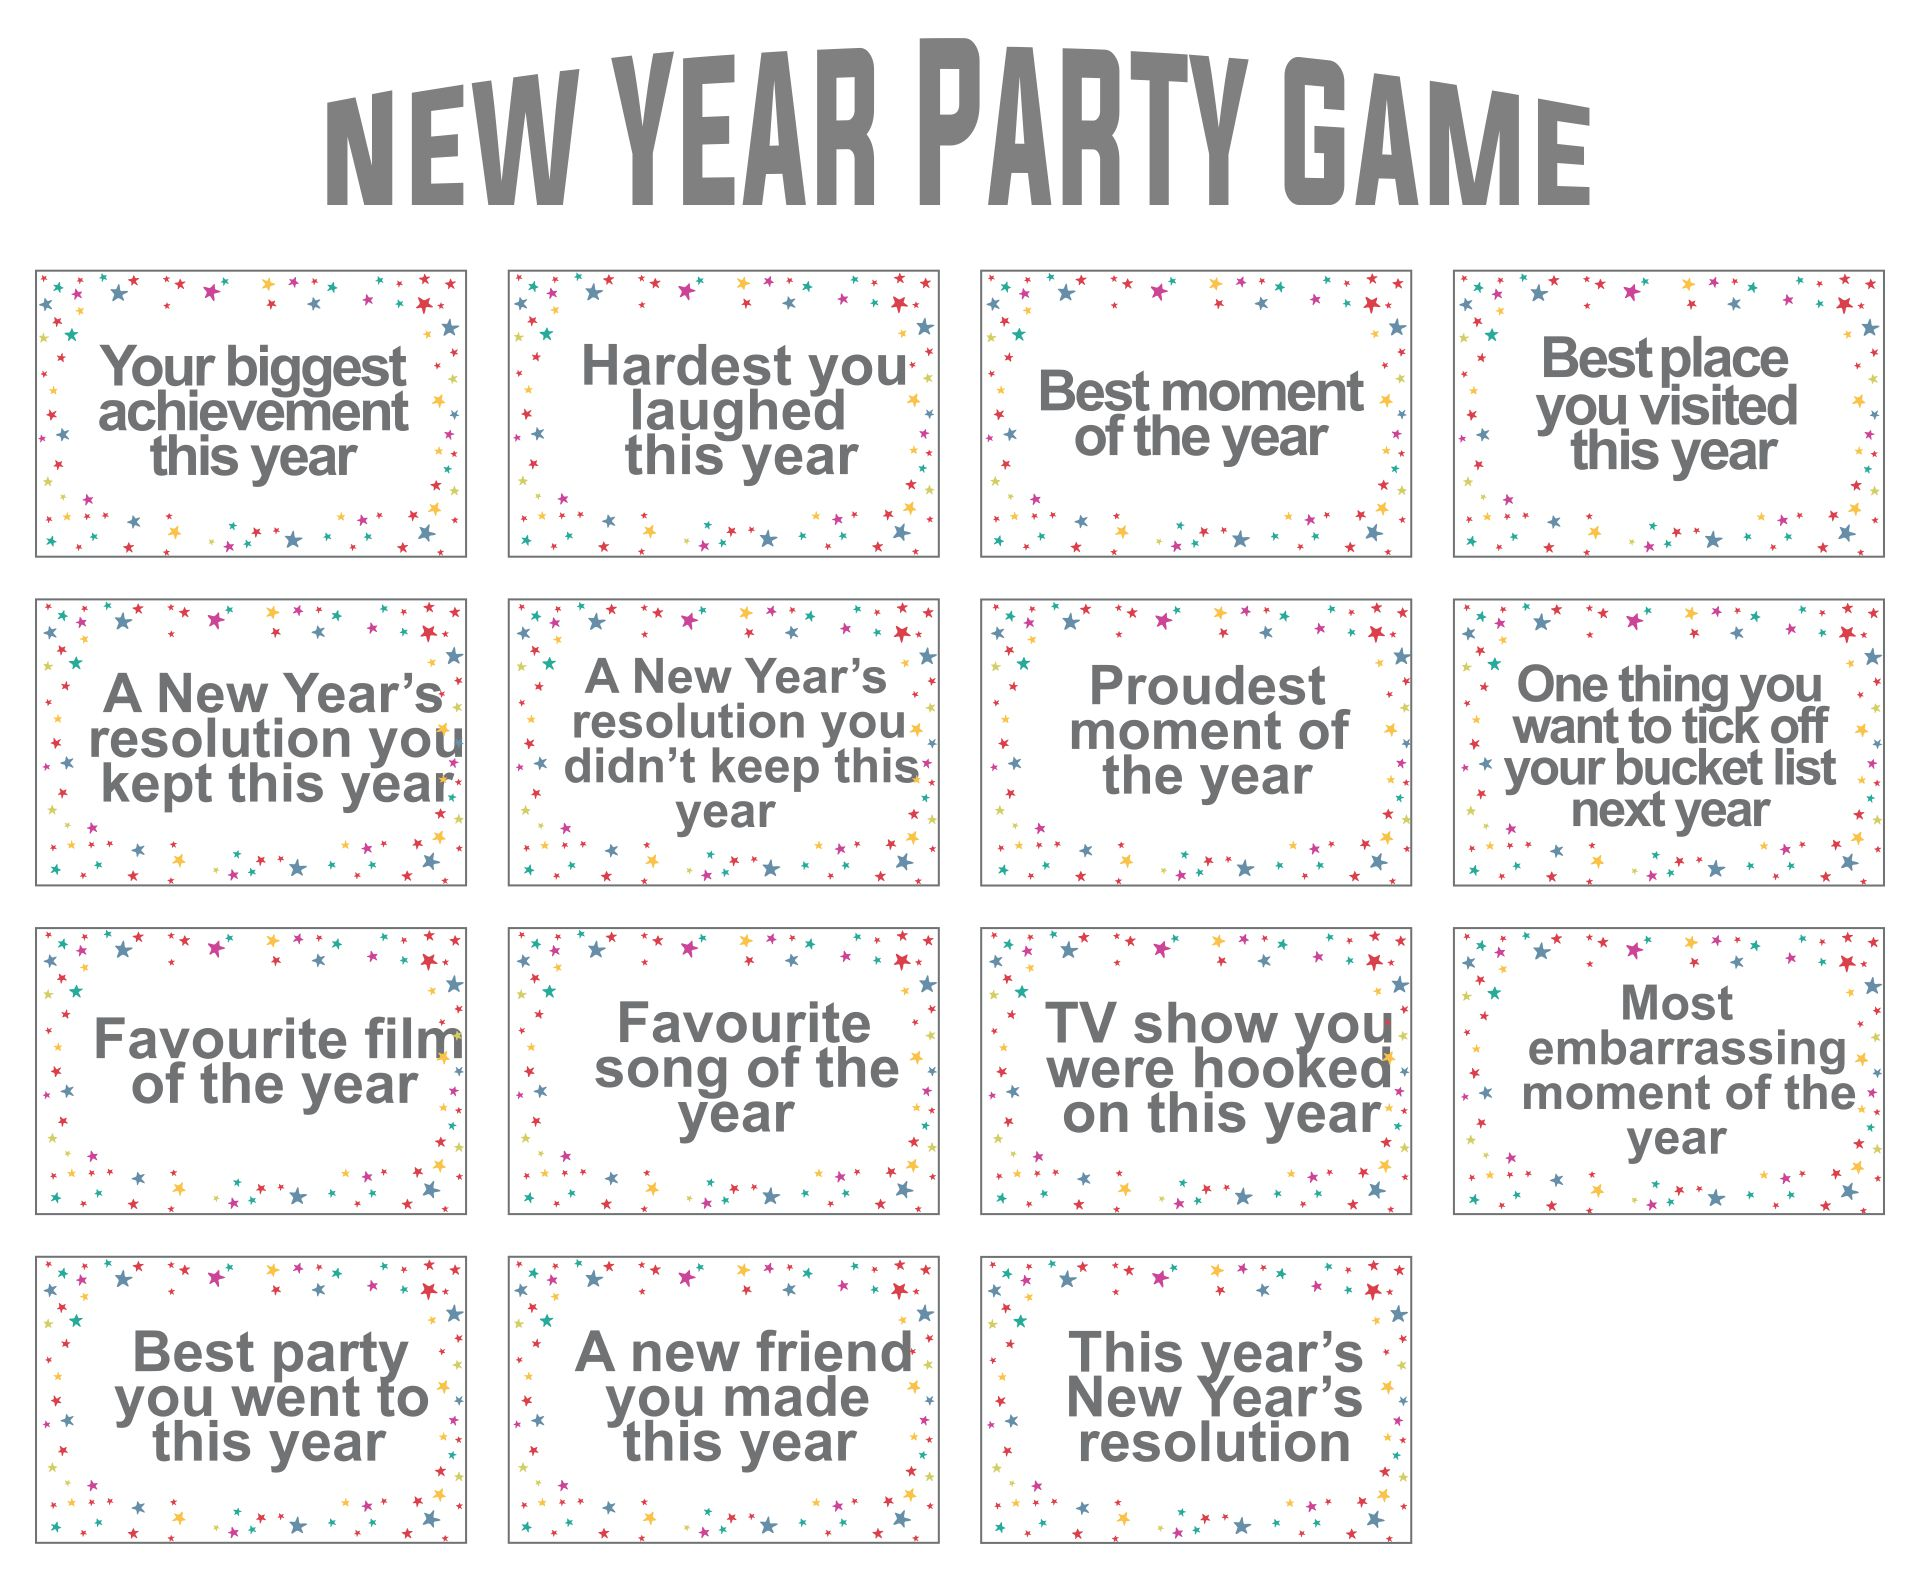 New Year Eve Party Games